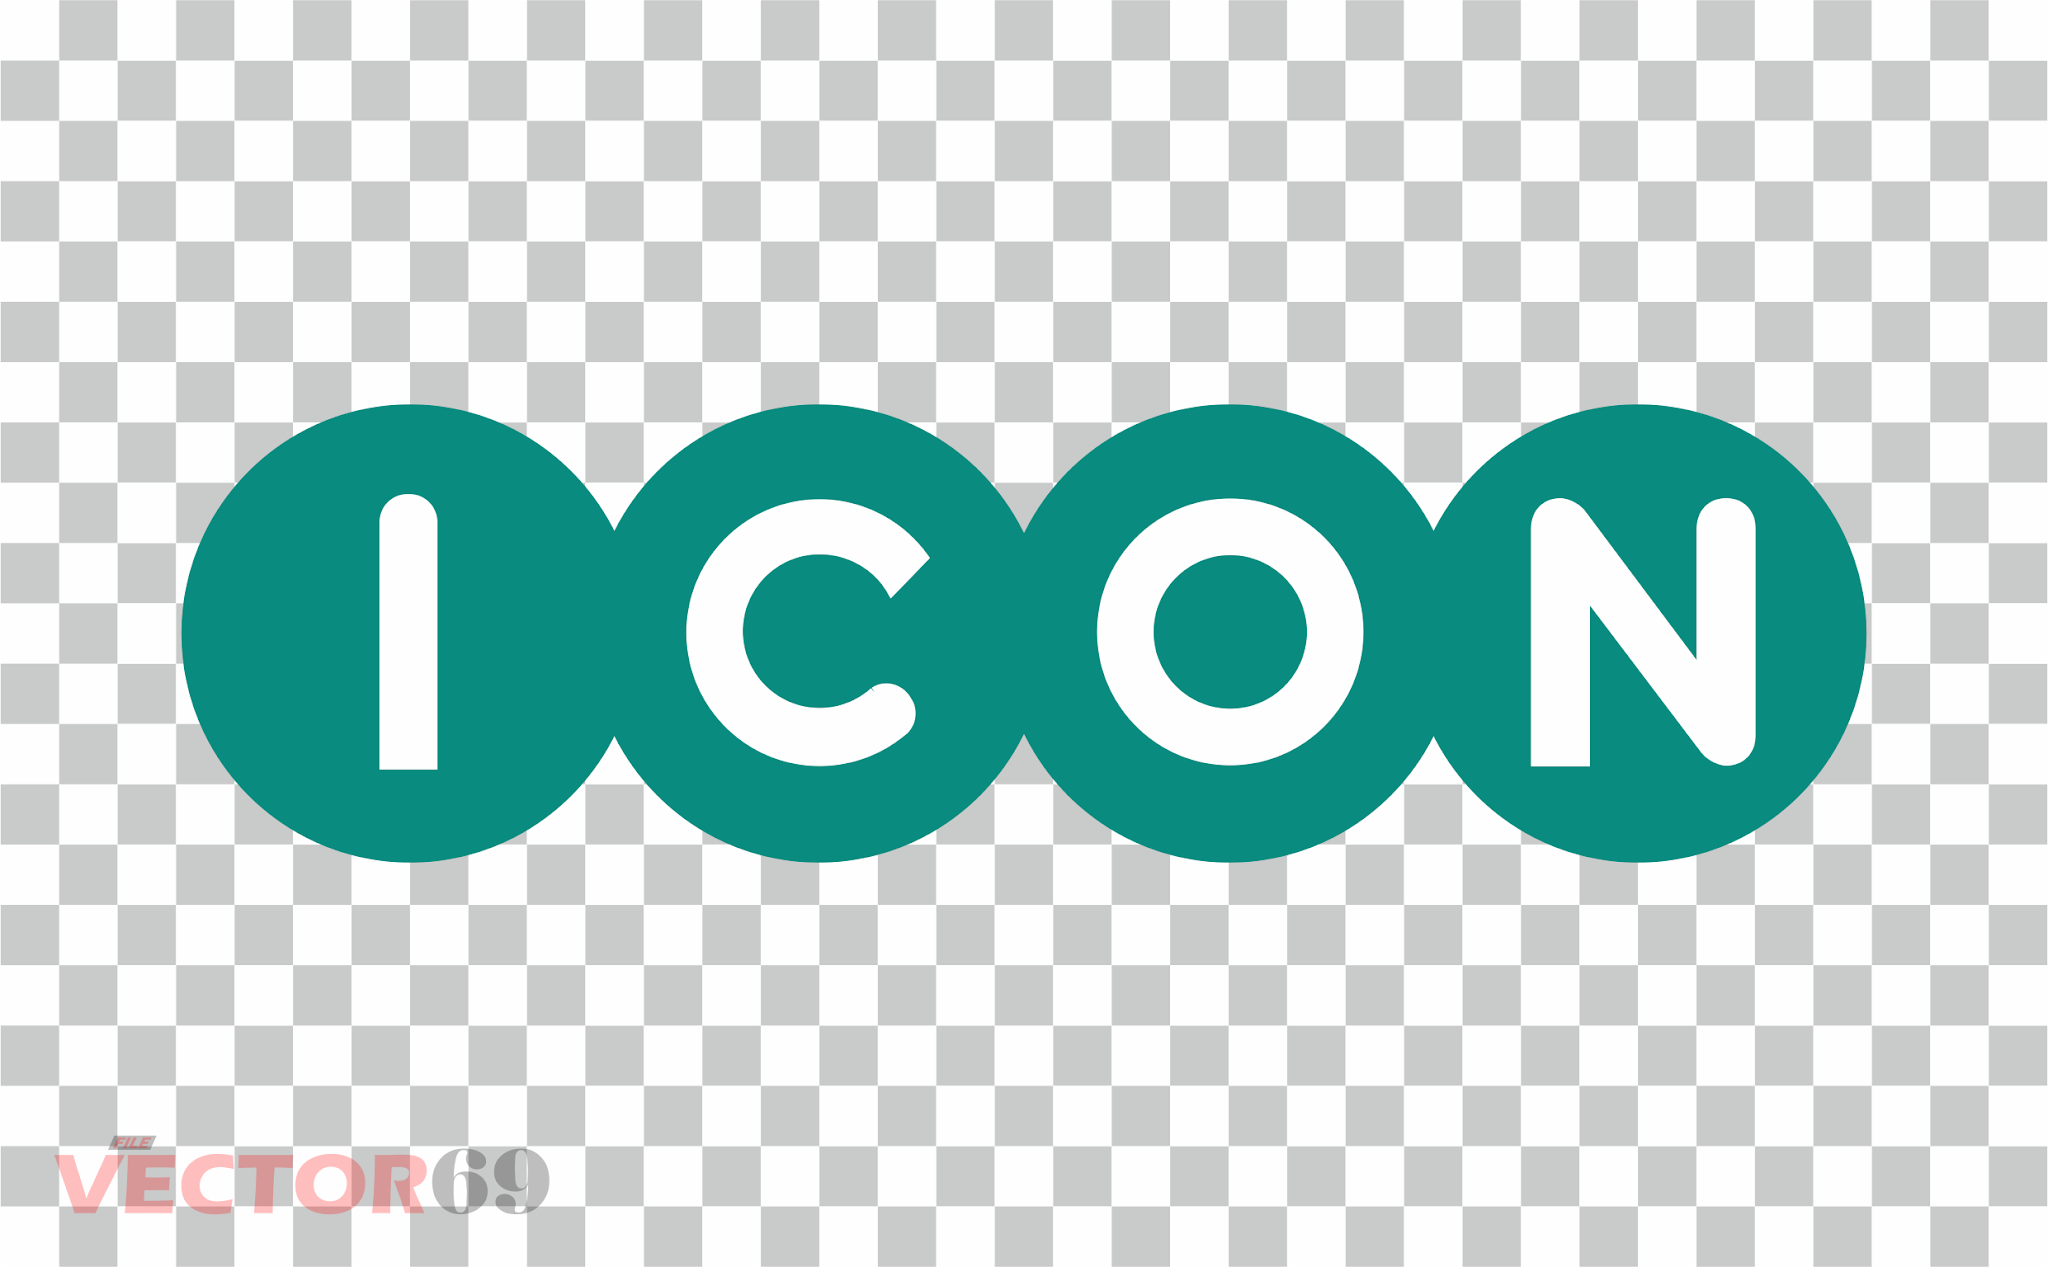 ICON plc Logo - Download Vector File PNG (Portable Network Graphics)